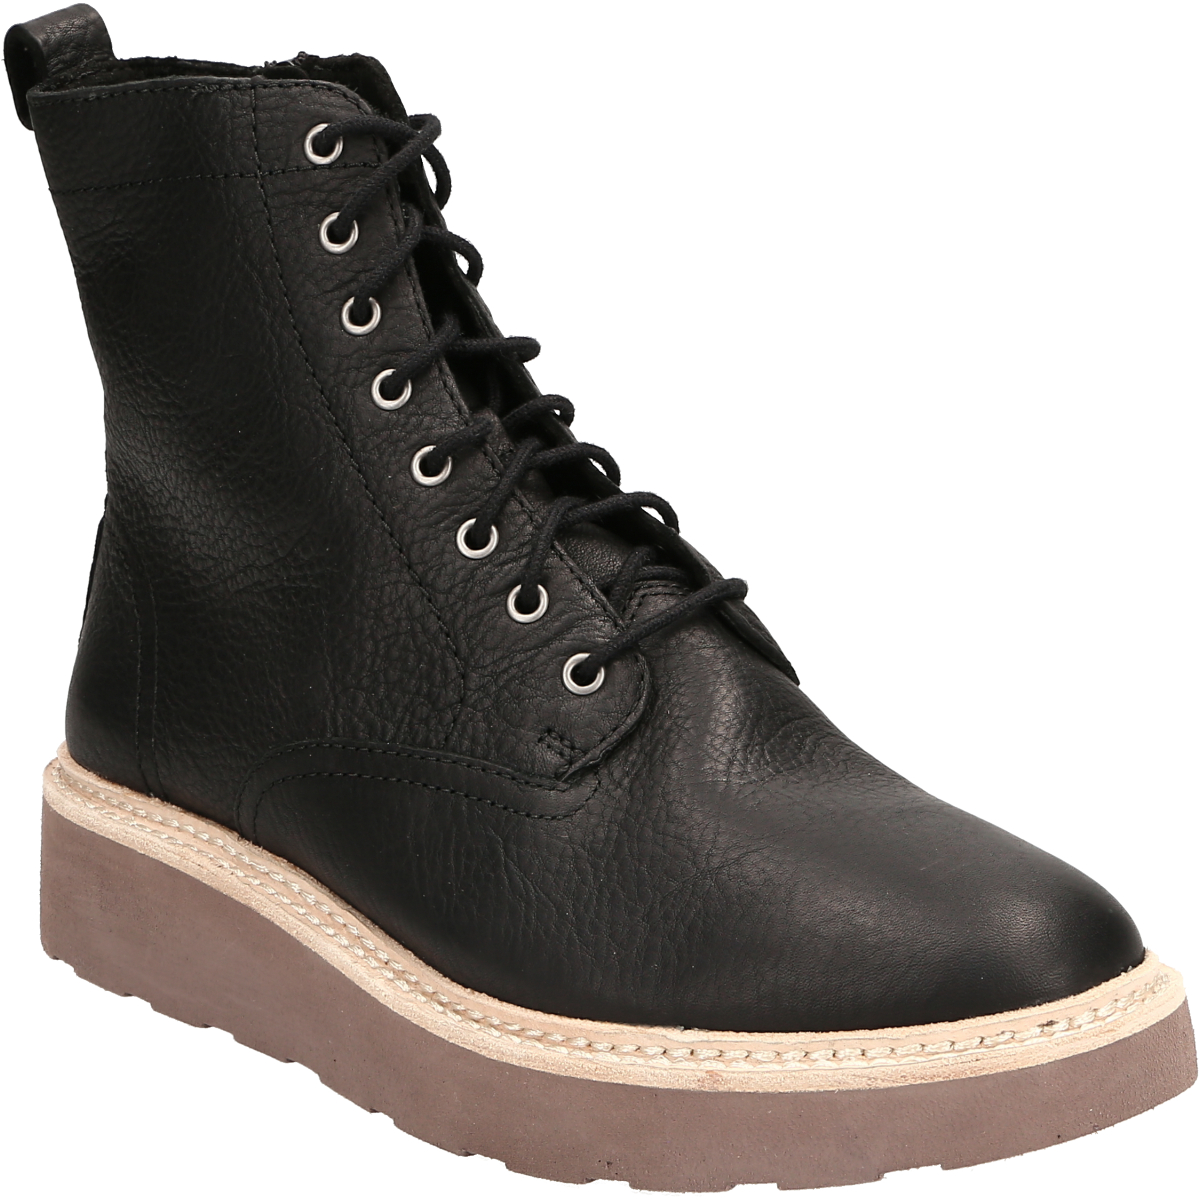 ladies black/&brown clarks leather boots size 7uk//40euro